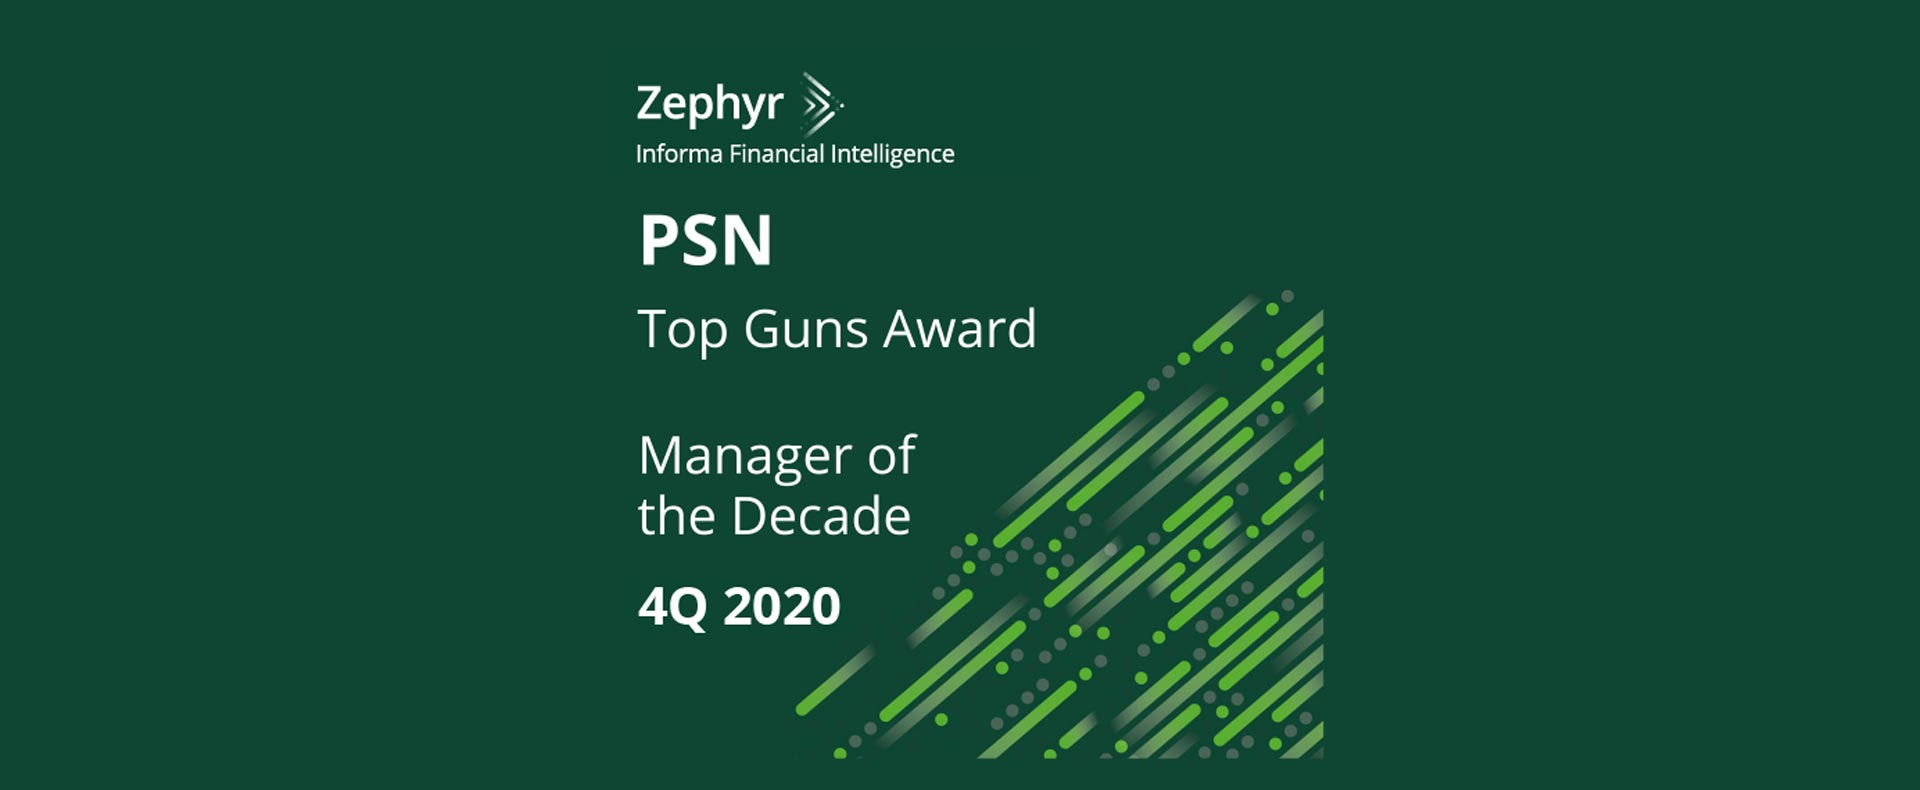 Churchill Management Group Awarded PSN Top Gun – Manager of the Decade by Informa Financial Intelligence